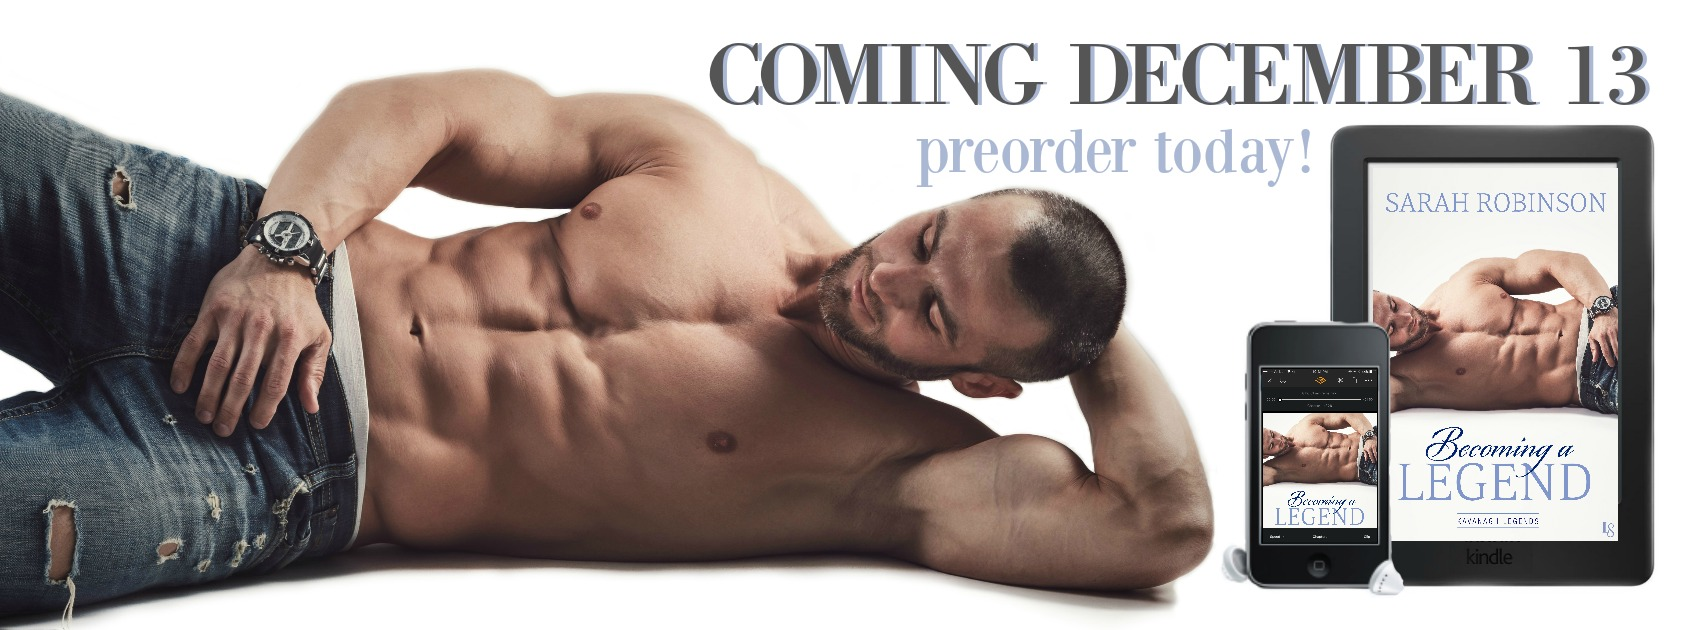 becoming-a-legend_coming-dec-13_preorder